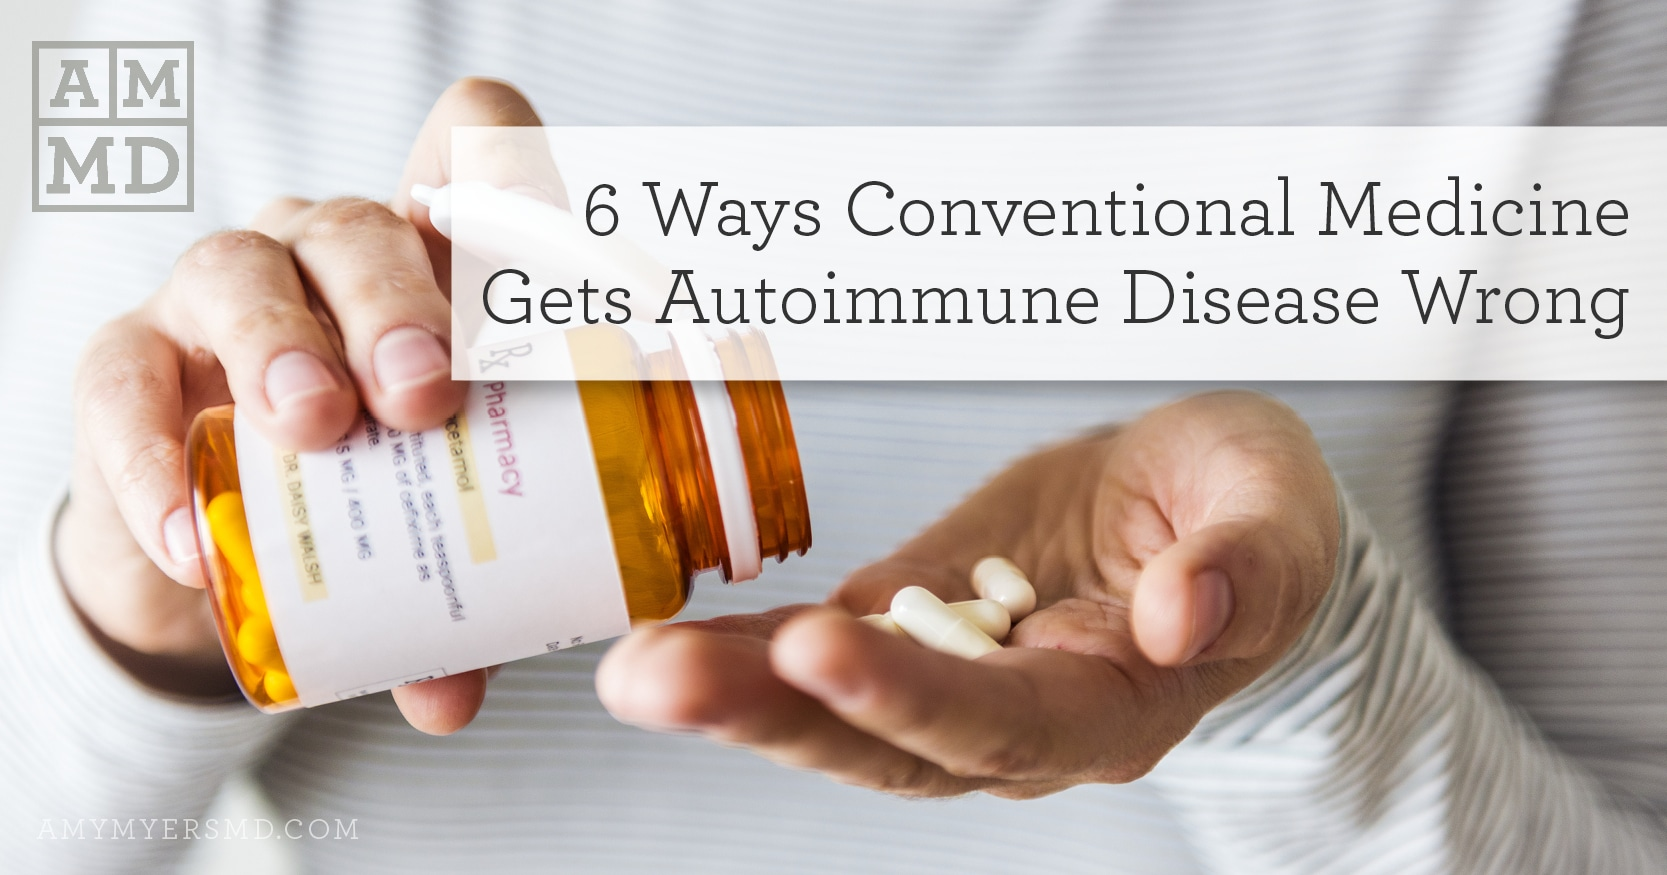 Conventional Medicine Gets Autoimmune Disease Wrong - 6 Ways - Featured Image - Woman taking pills - Amy Myers MD